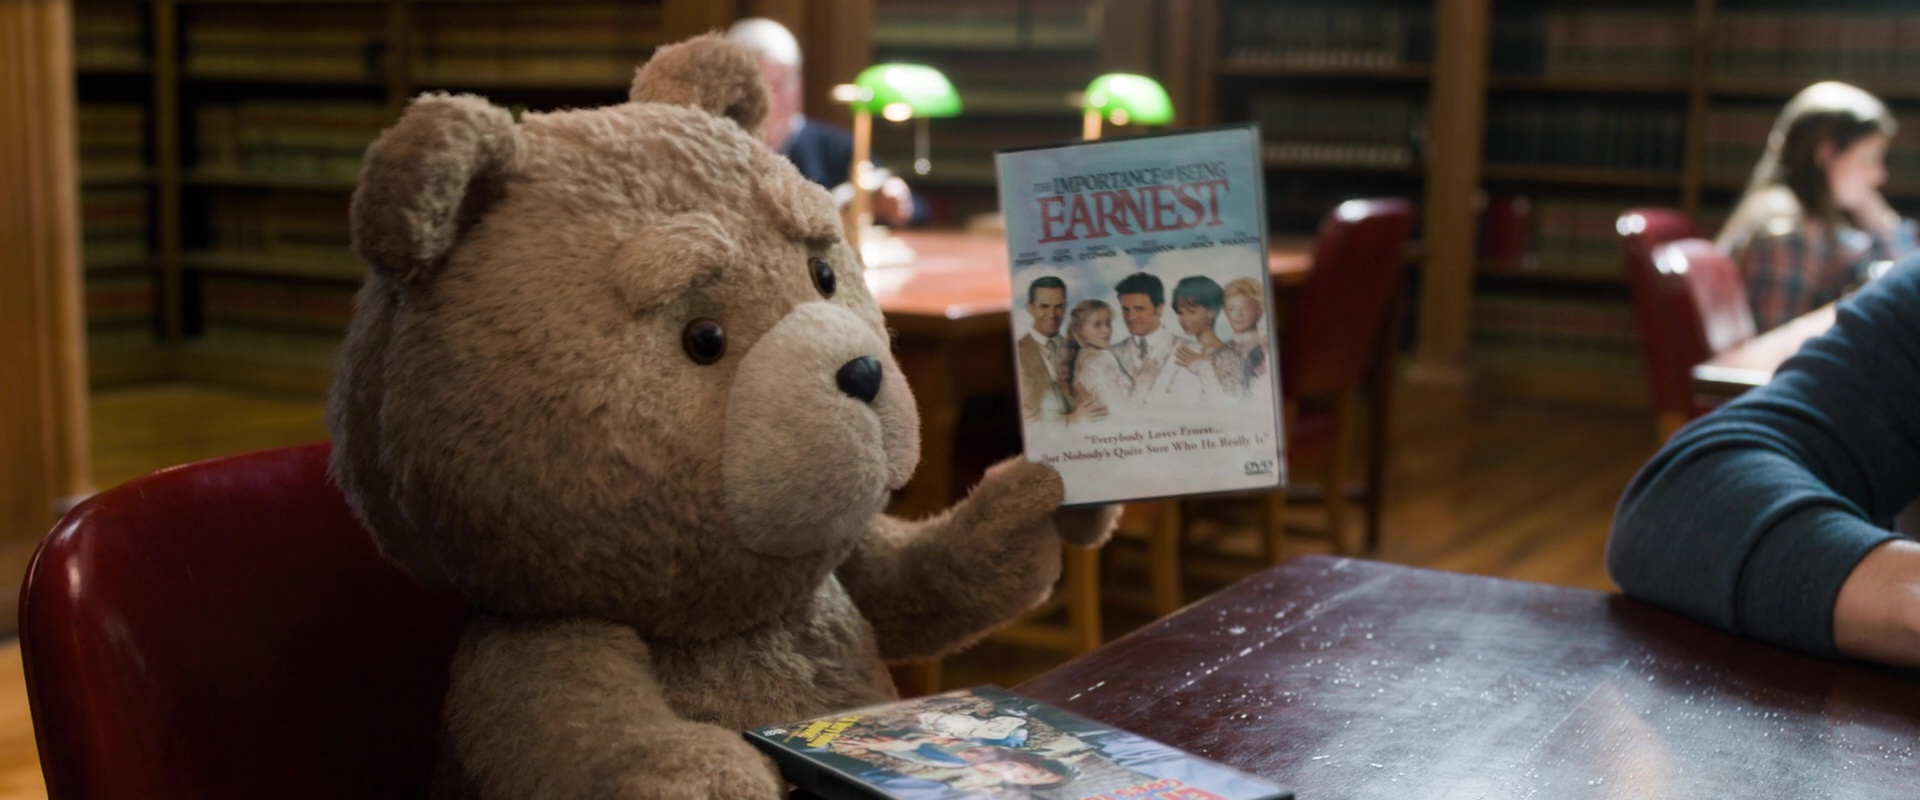 Ted 2 film still 8